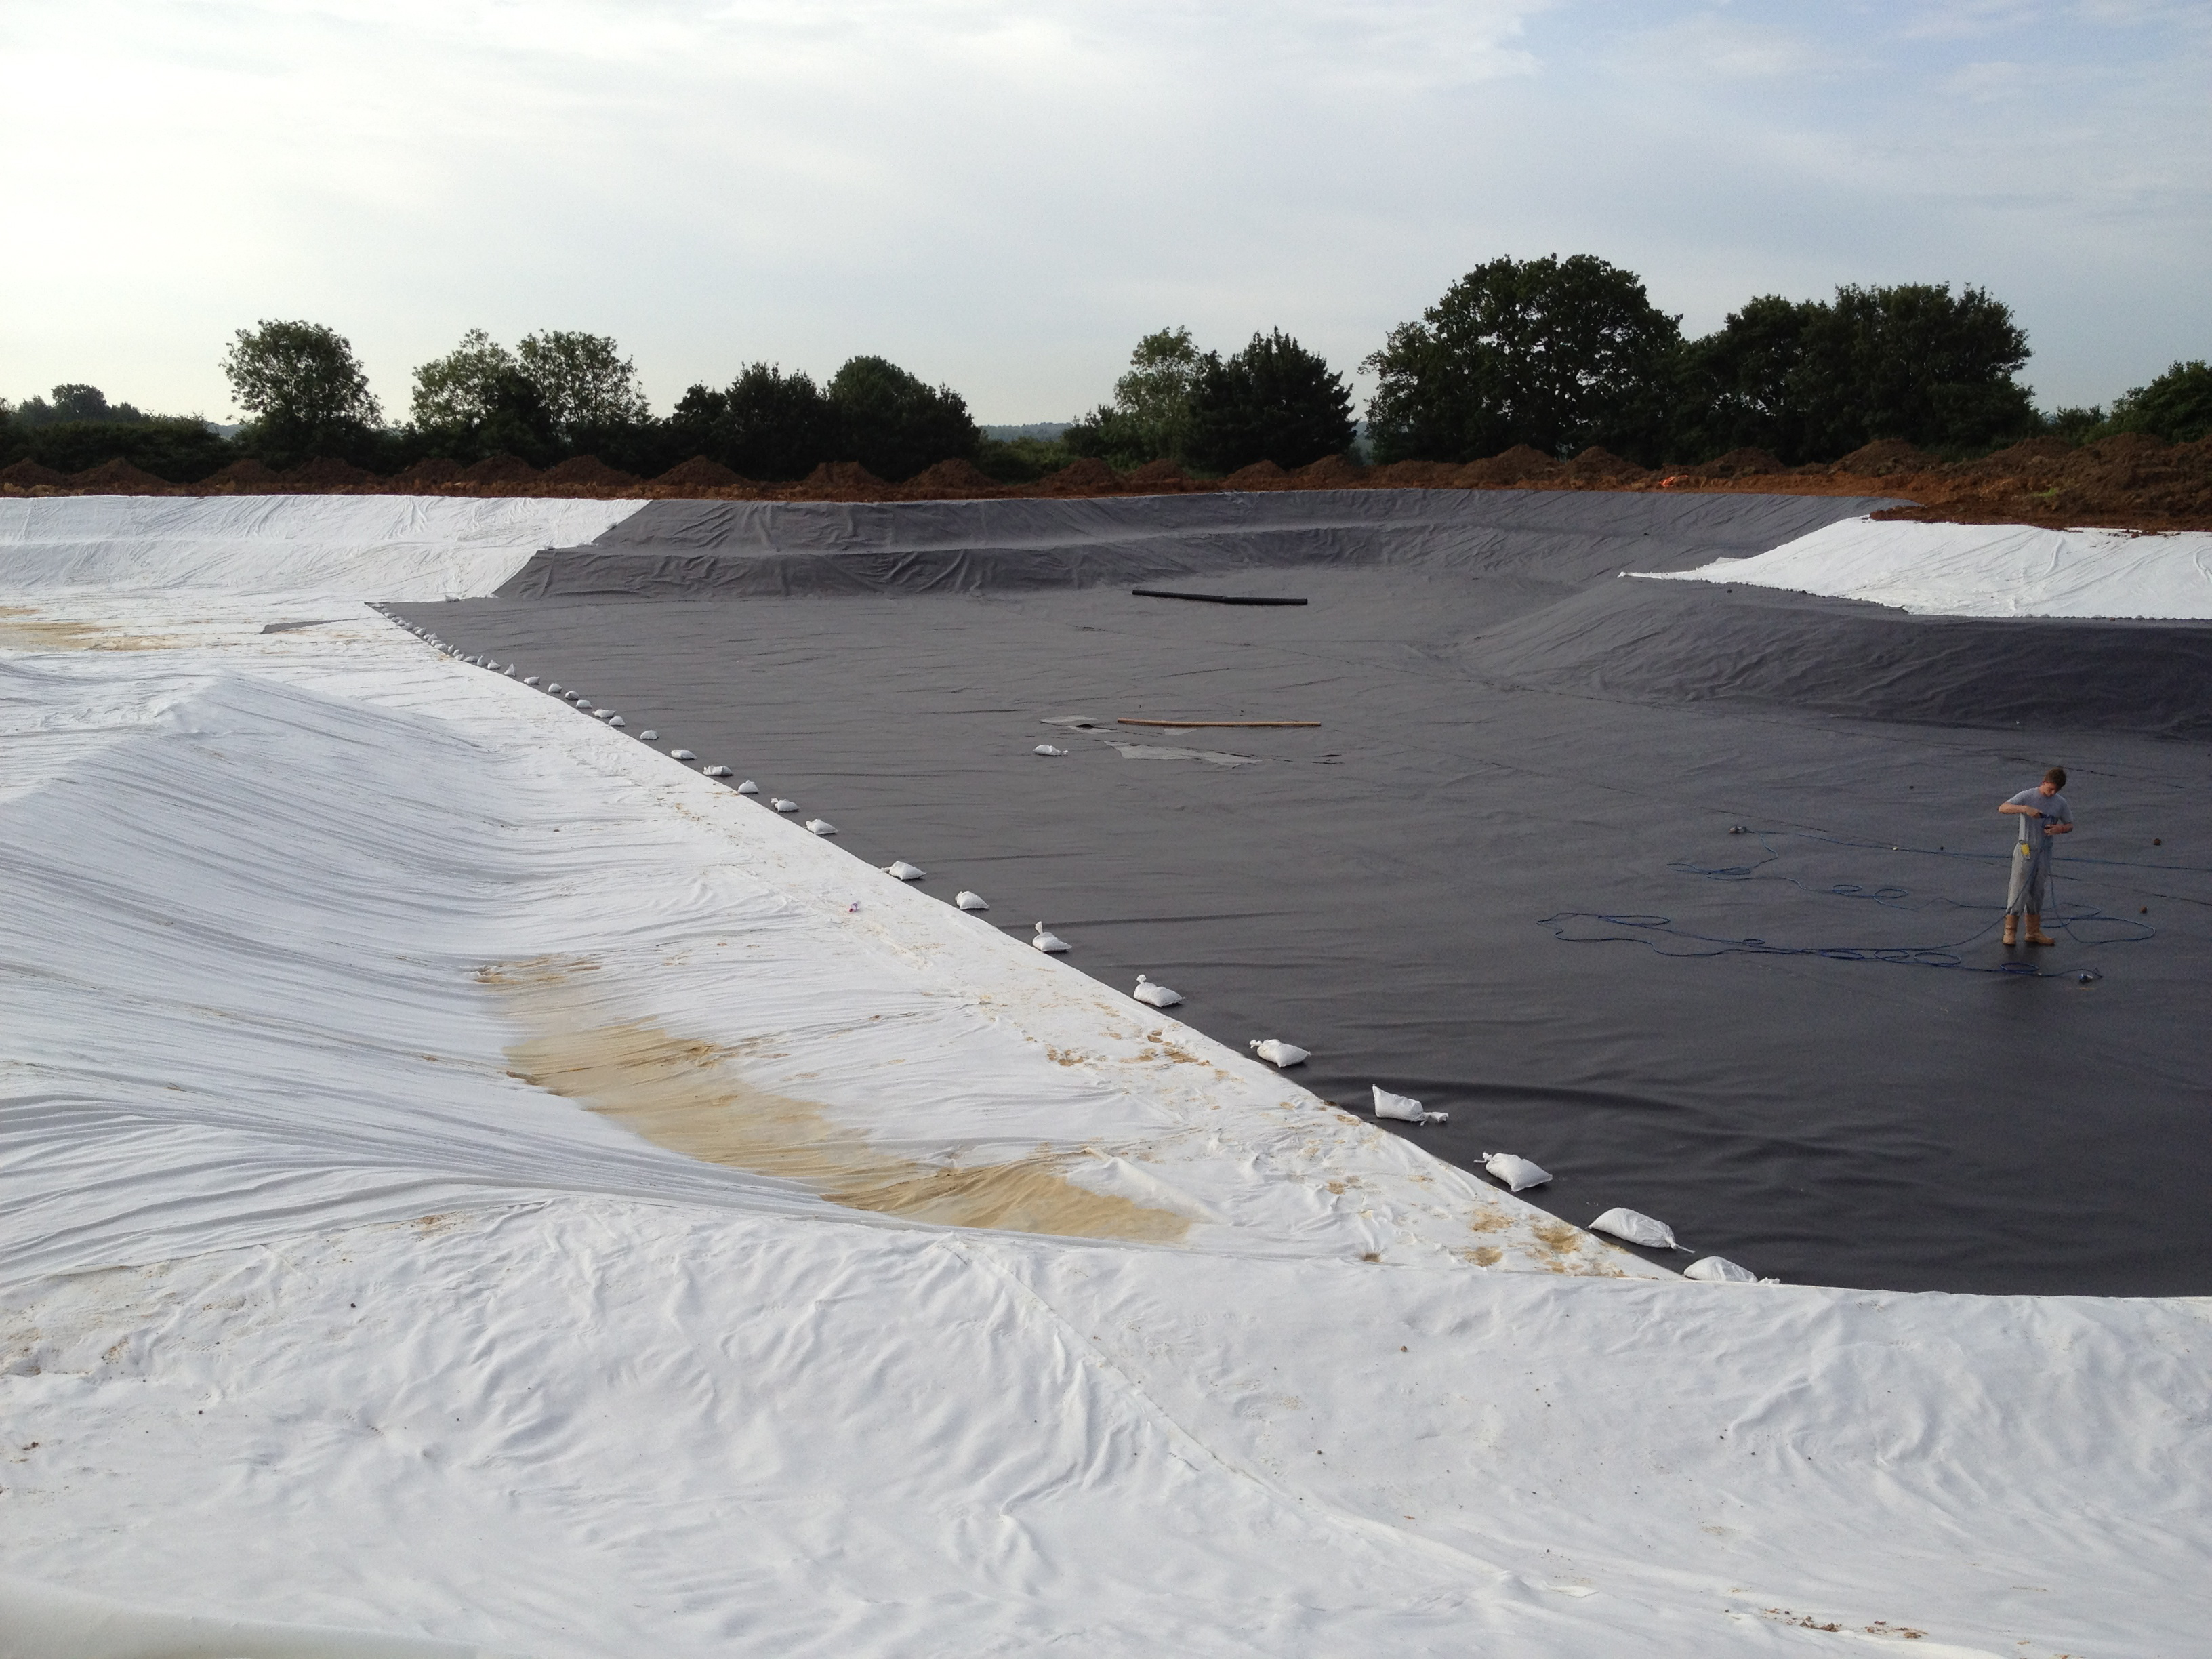 HDPE liner and geomembrane being installed for a Lake project in Cambridgeshire